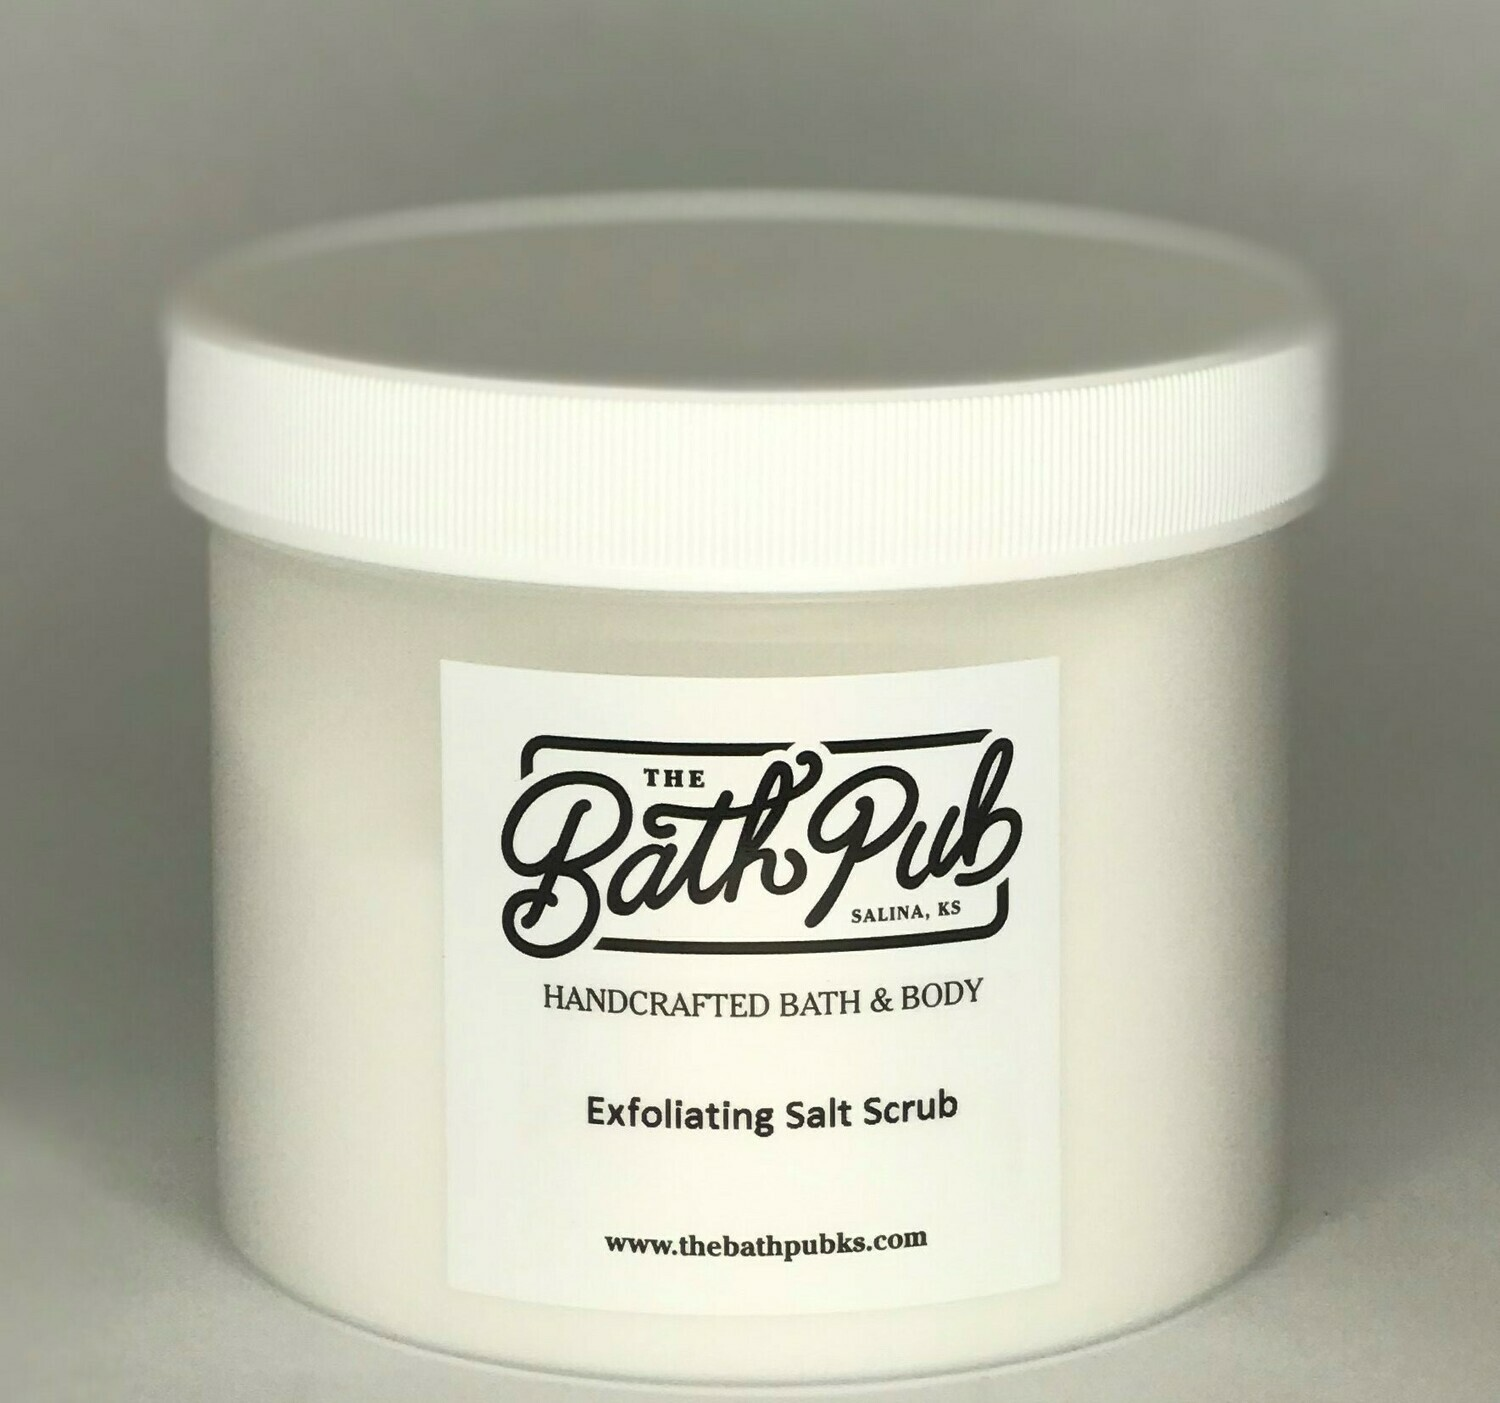 EXFOLIATING SALT SCRUB 32 OZ + SHOWER LOTION 16 OZ + HAIR AND BODY MIST 4 OZ